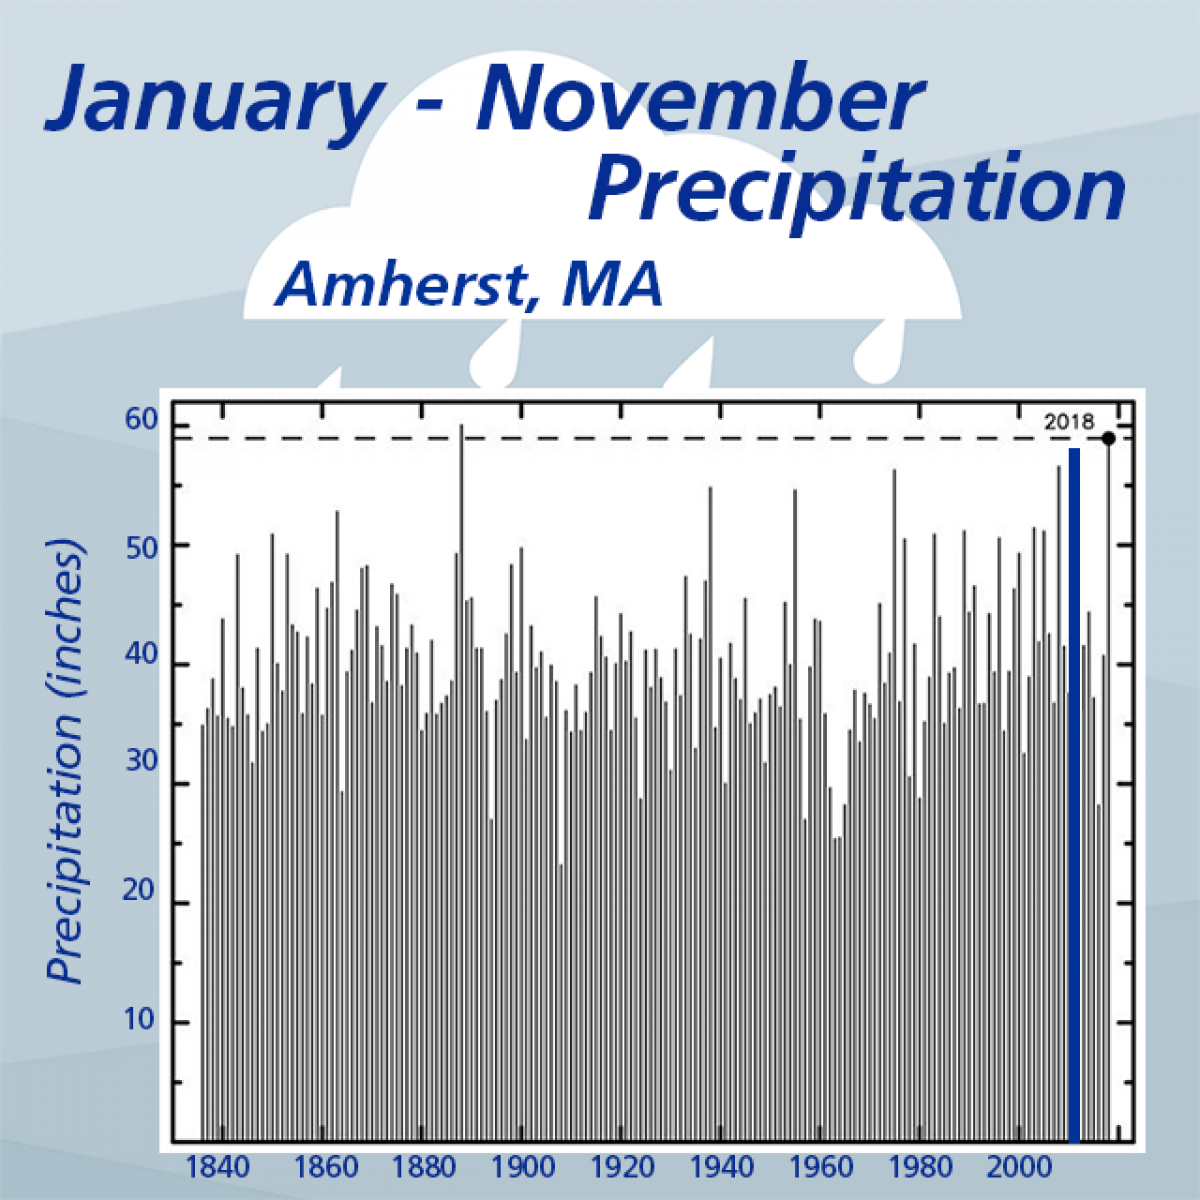 January - November Precipitation, Amherst, MA